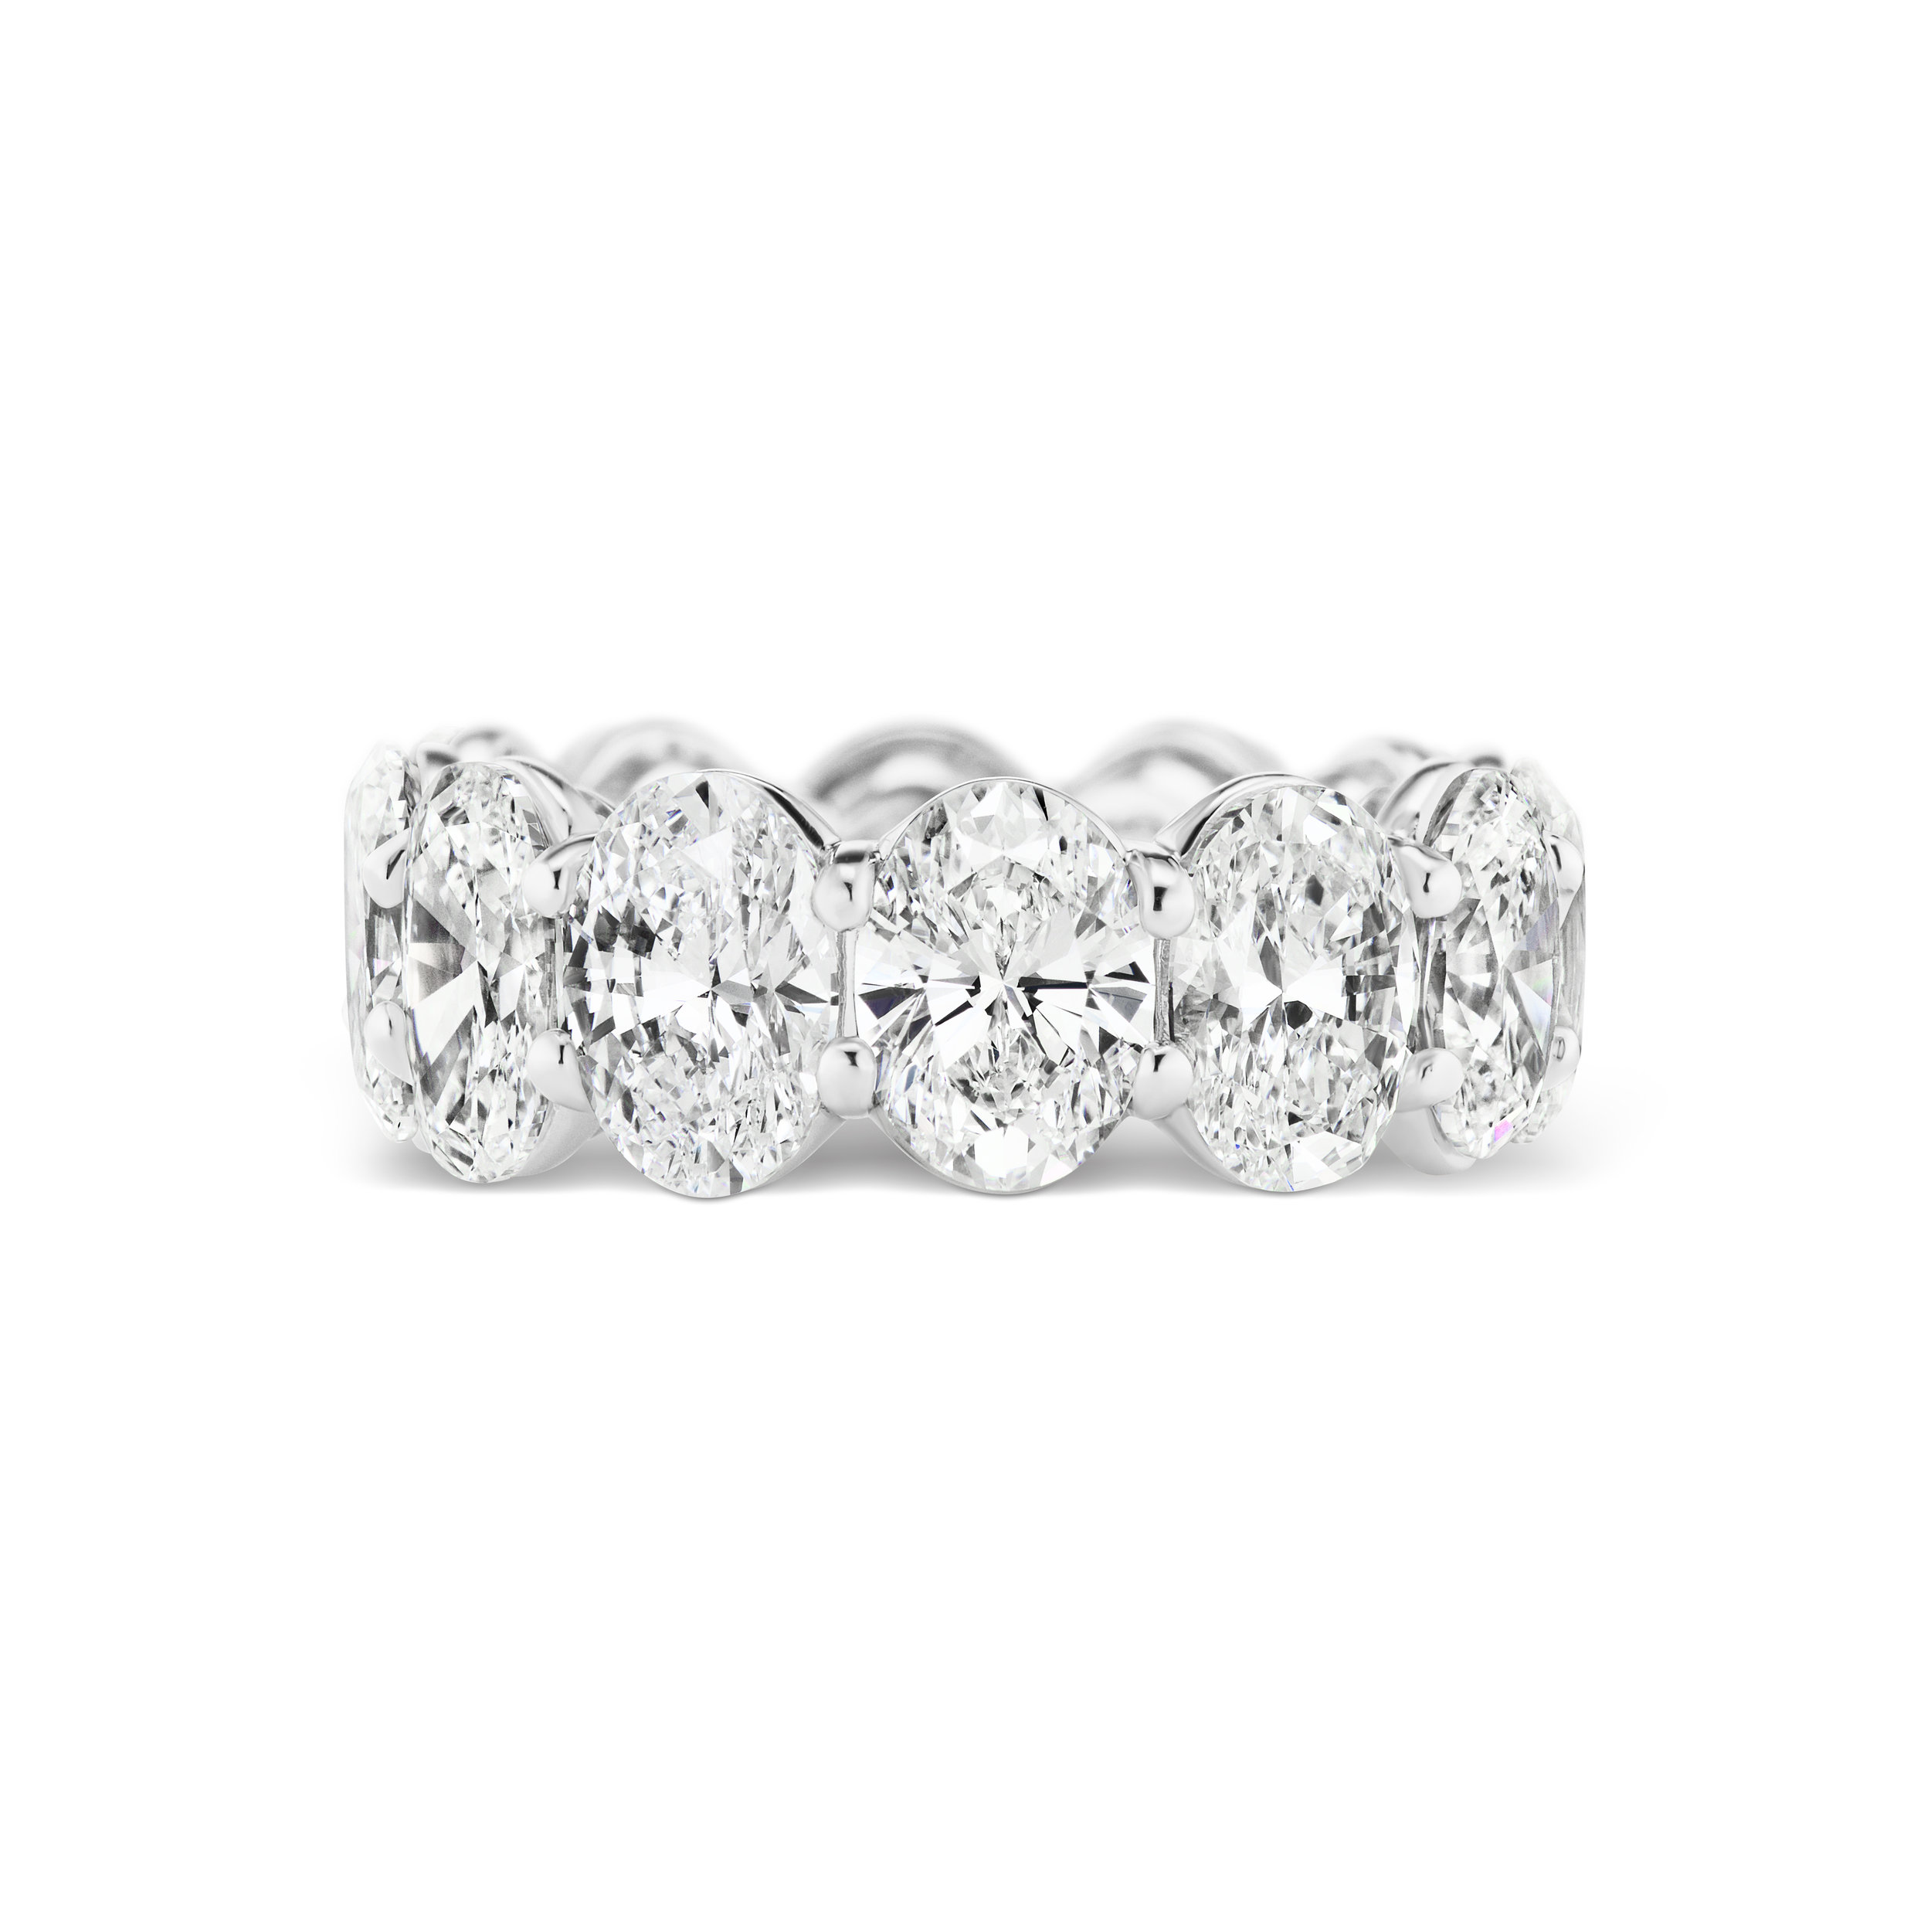 Oval diamond eternity band, mounted in platinum.